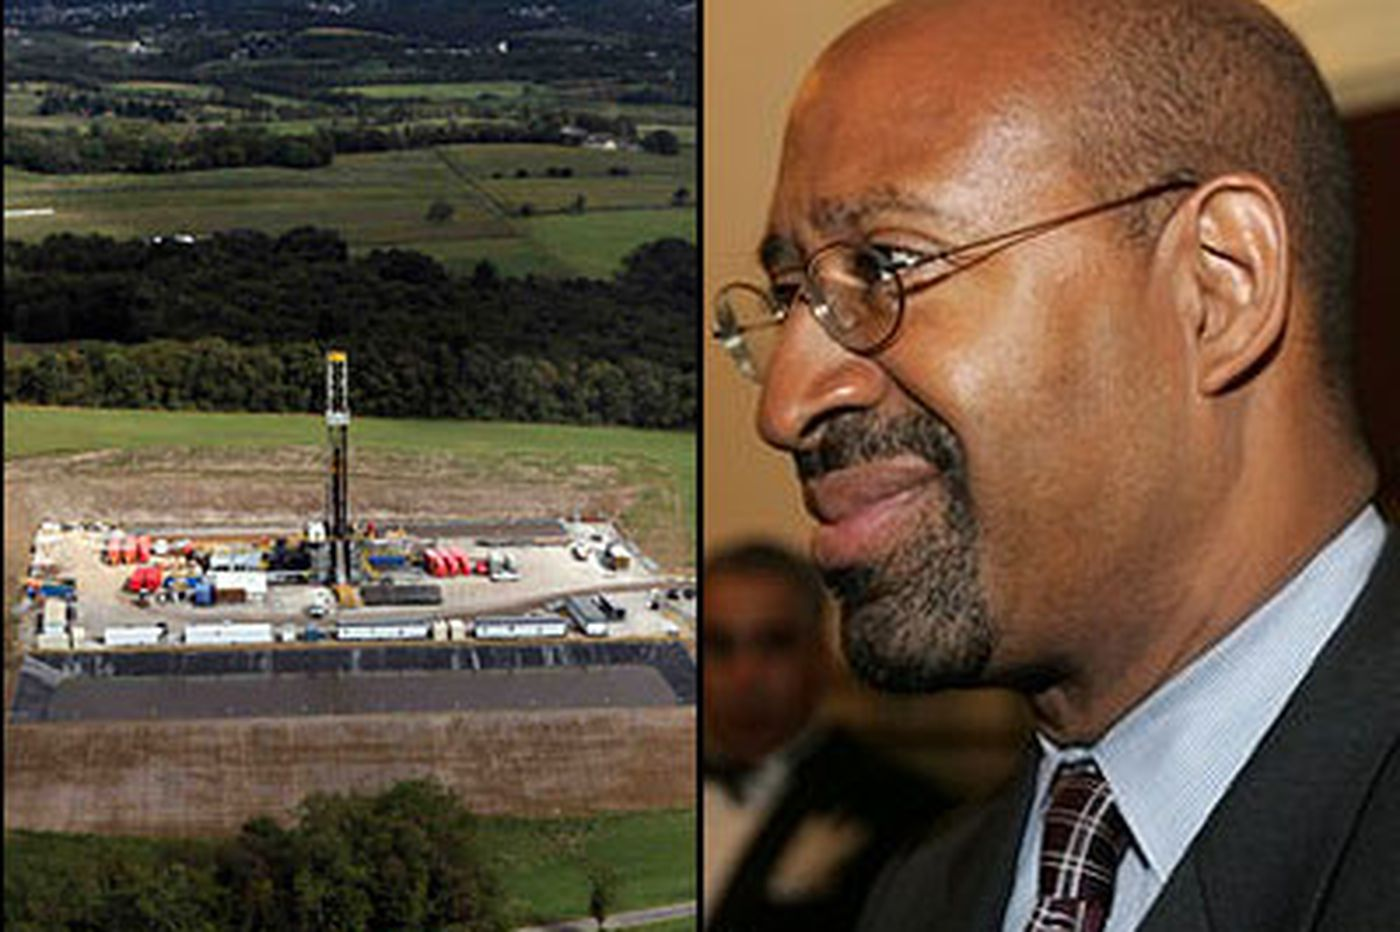 Nutter resists a role in shale showdown